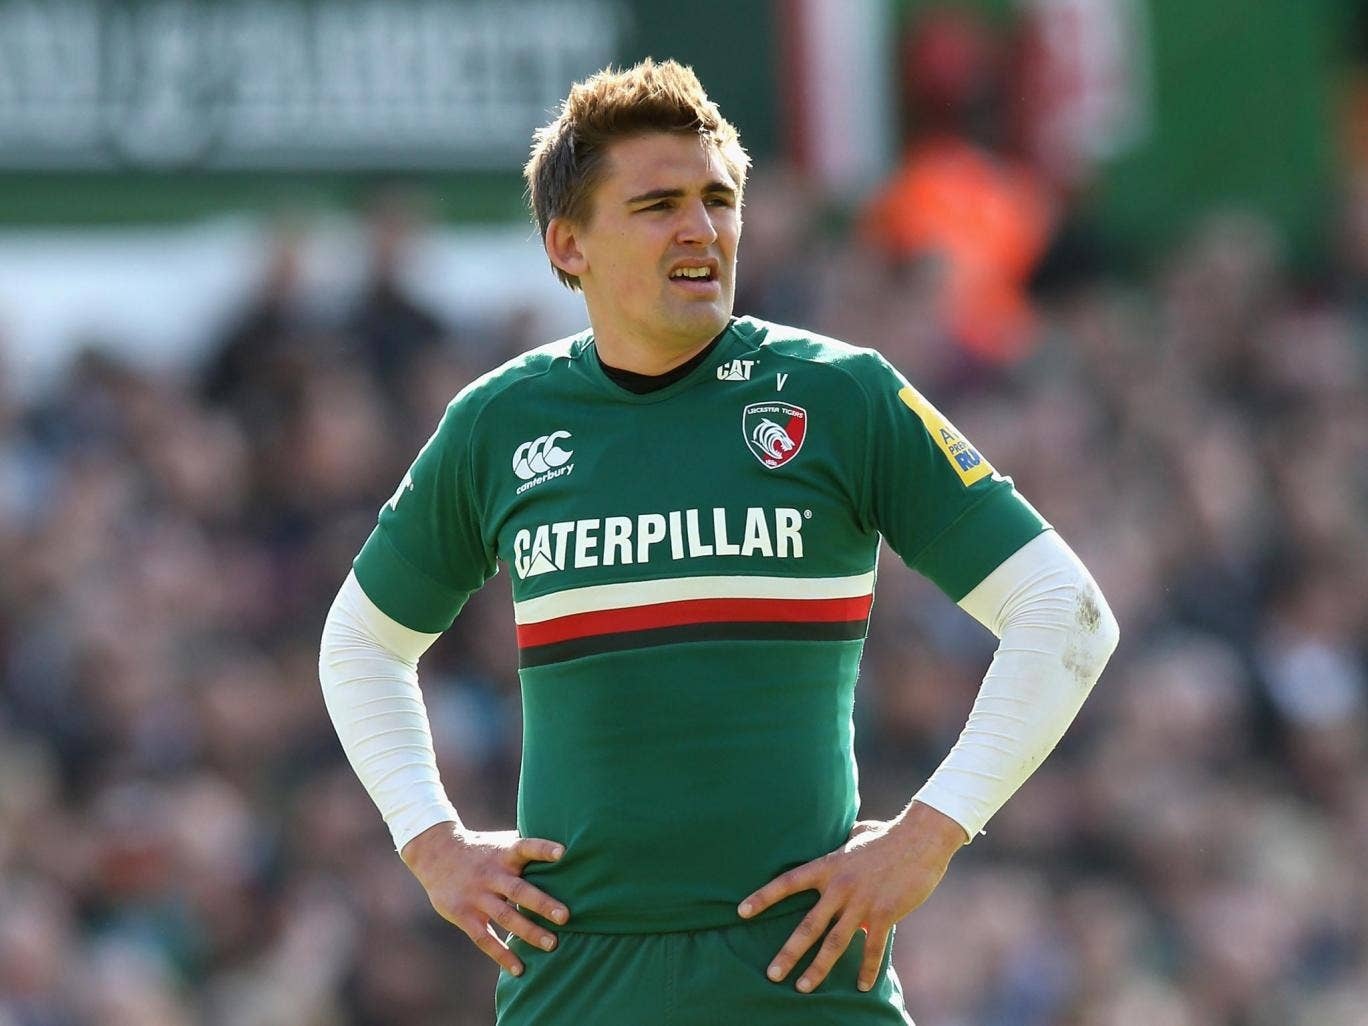 Fly-half Toby Flood will try to increase the Tigers' chances of a top-two league finish tonight